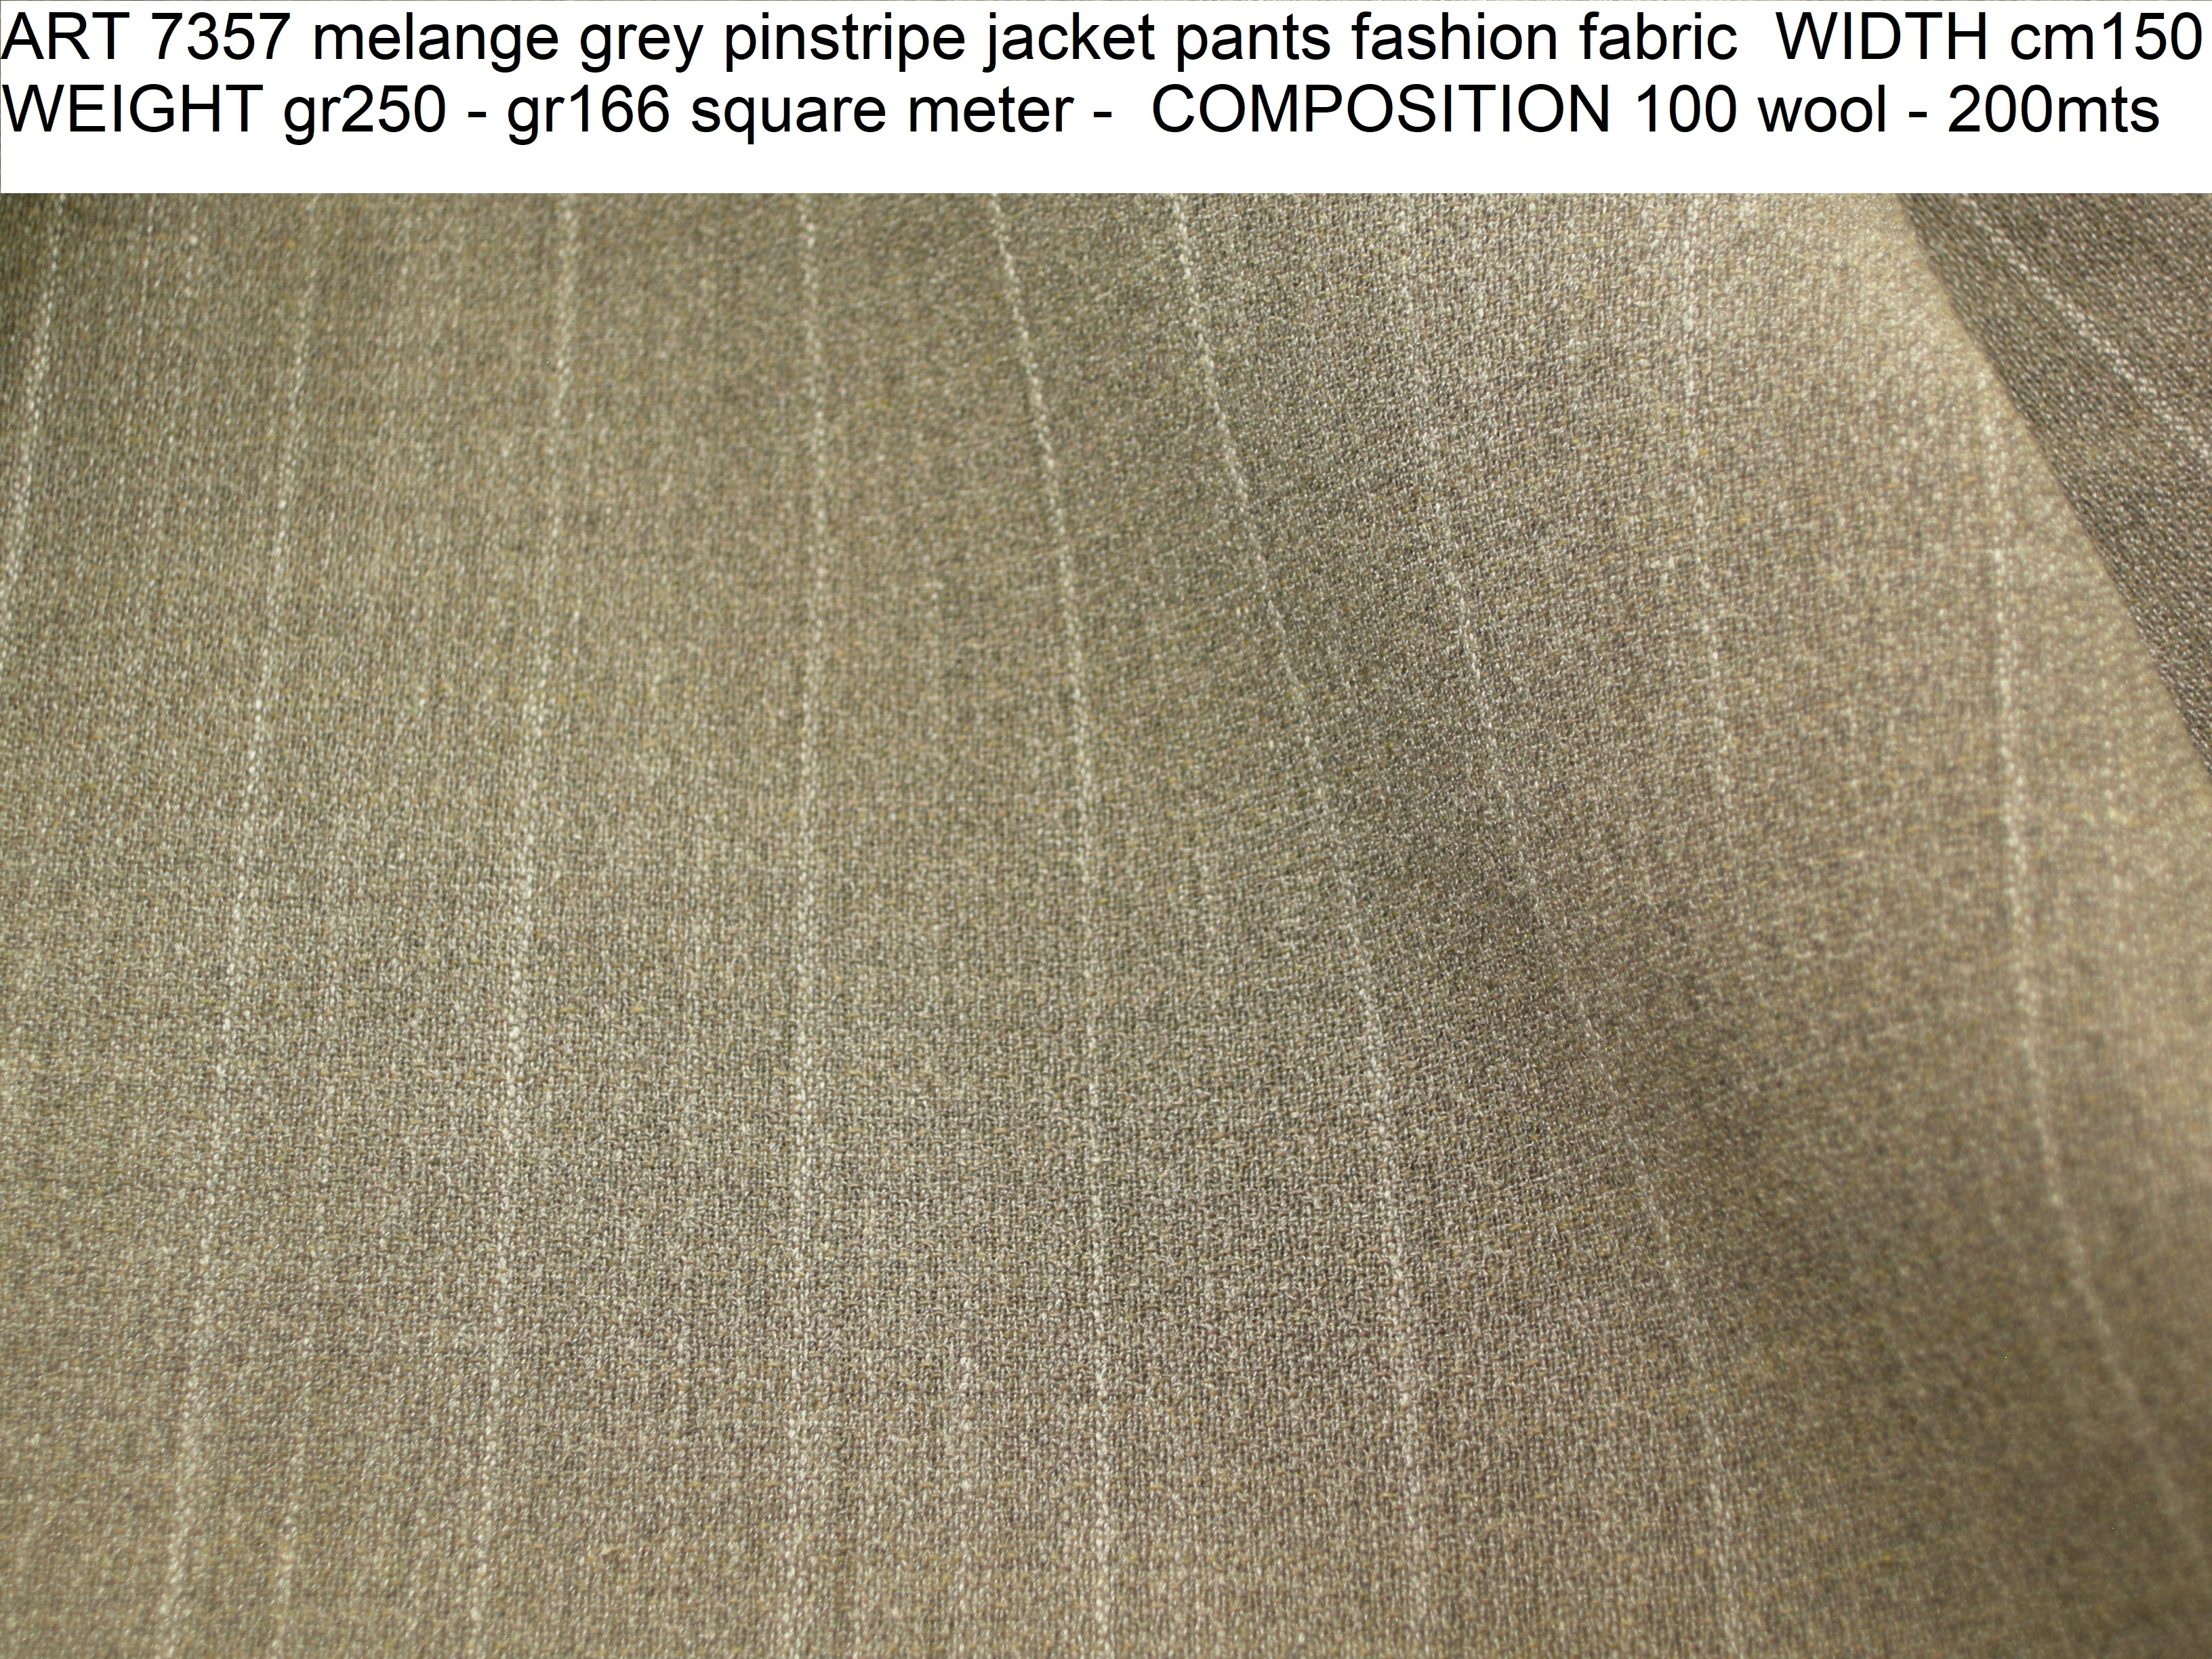 ART 7357 melange grey pinstripe jacket pants fashion fabric WIDTH cm150 WEIGHT gr250 - gr166 square meter - COMPOSITION 100 wool - 200mts